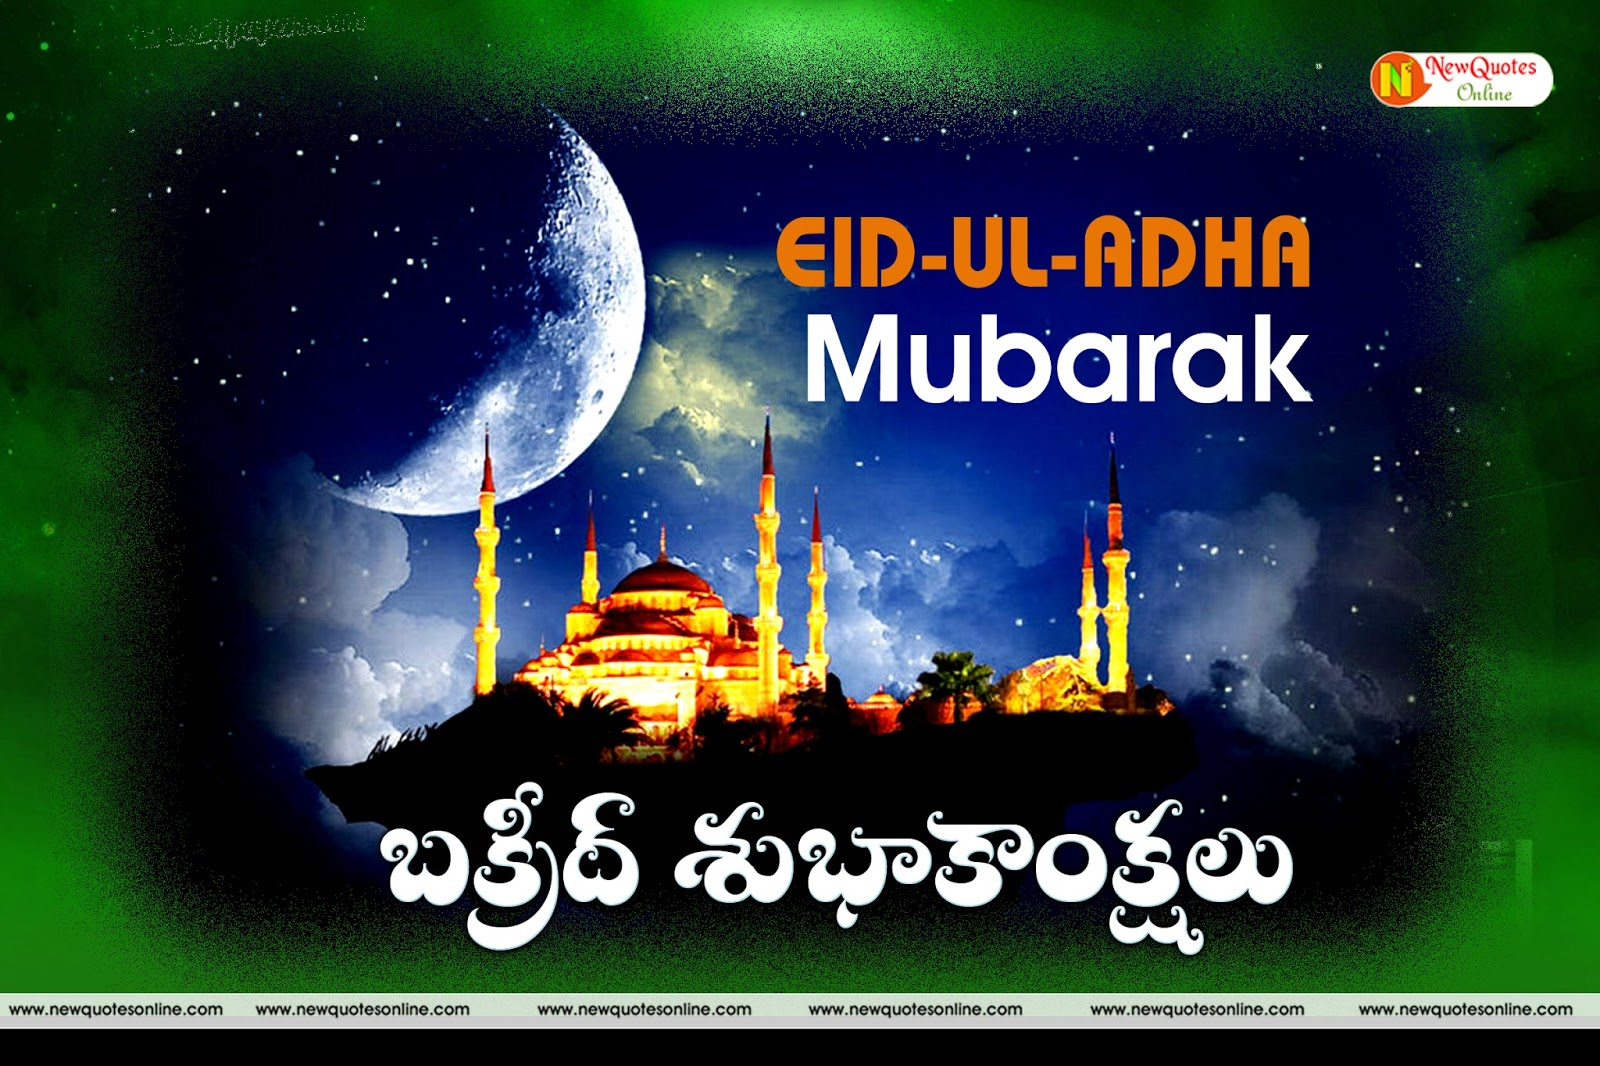 Happy Bakrid Greetings Cards Download And Share This Eid Ul Adha